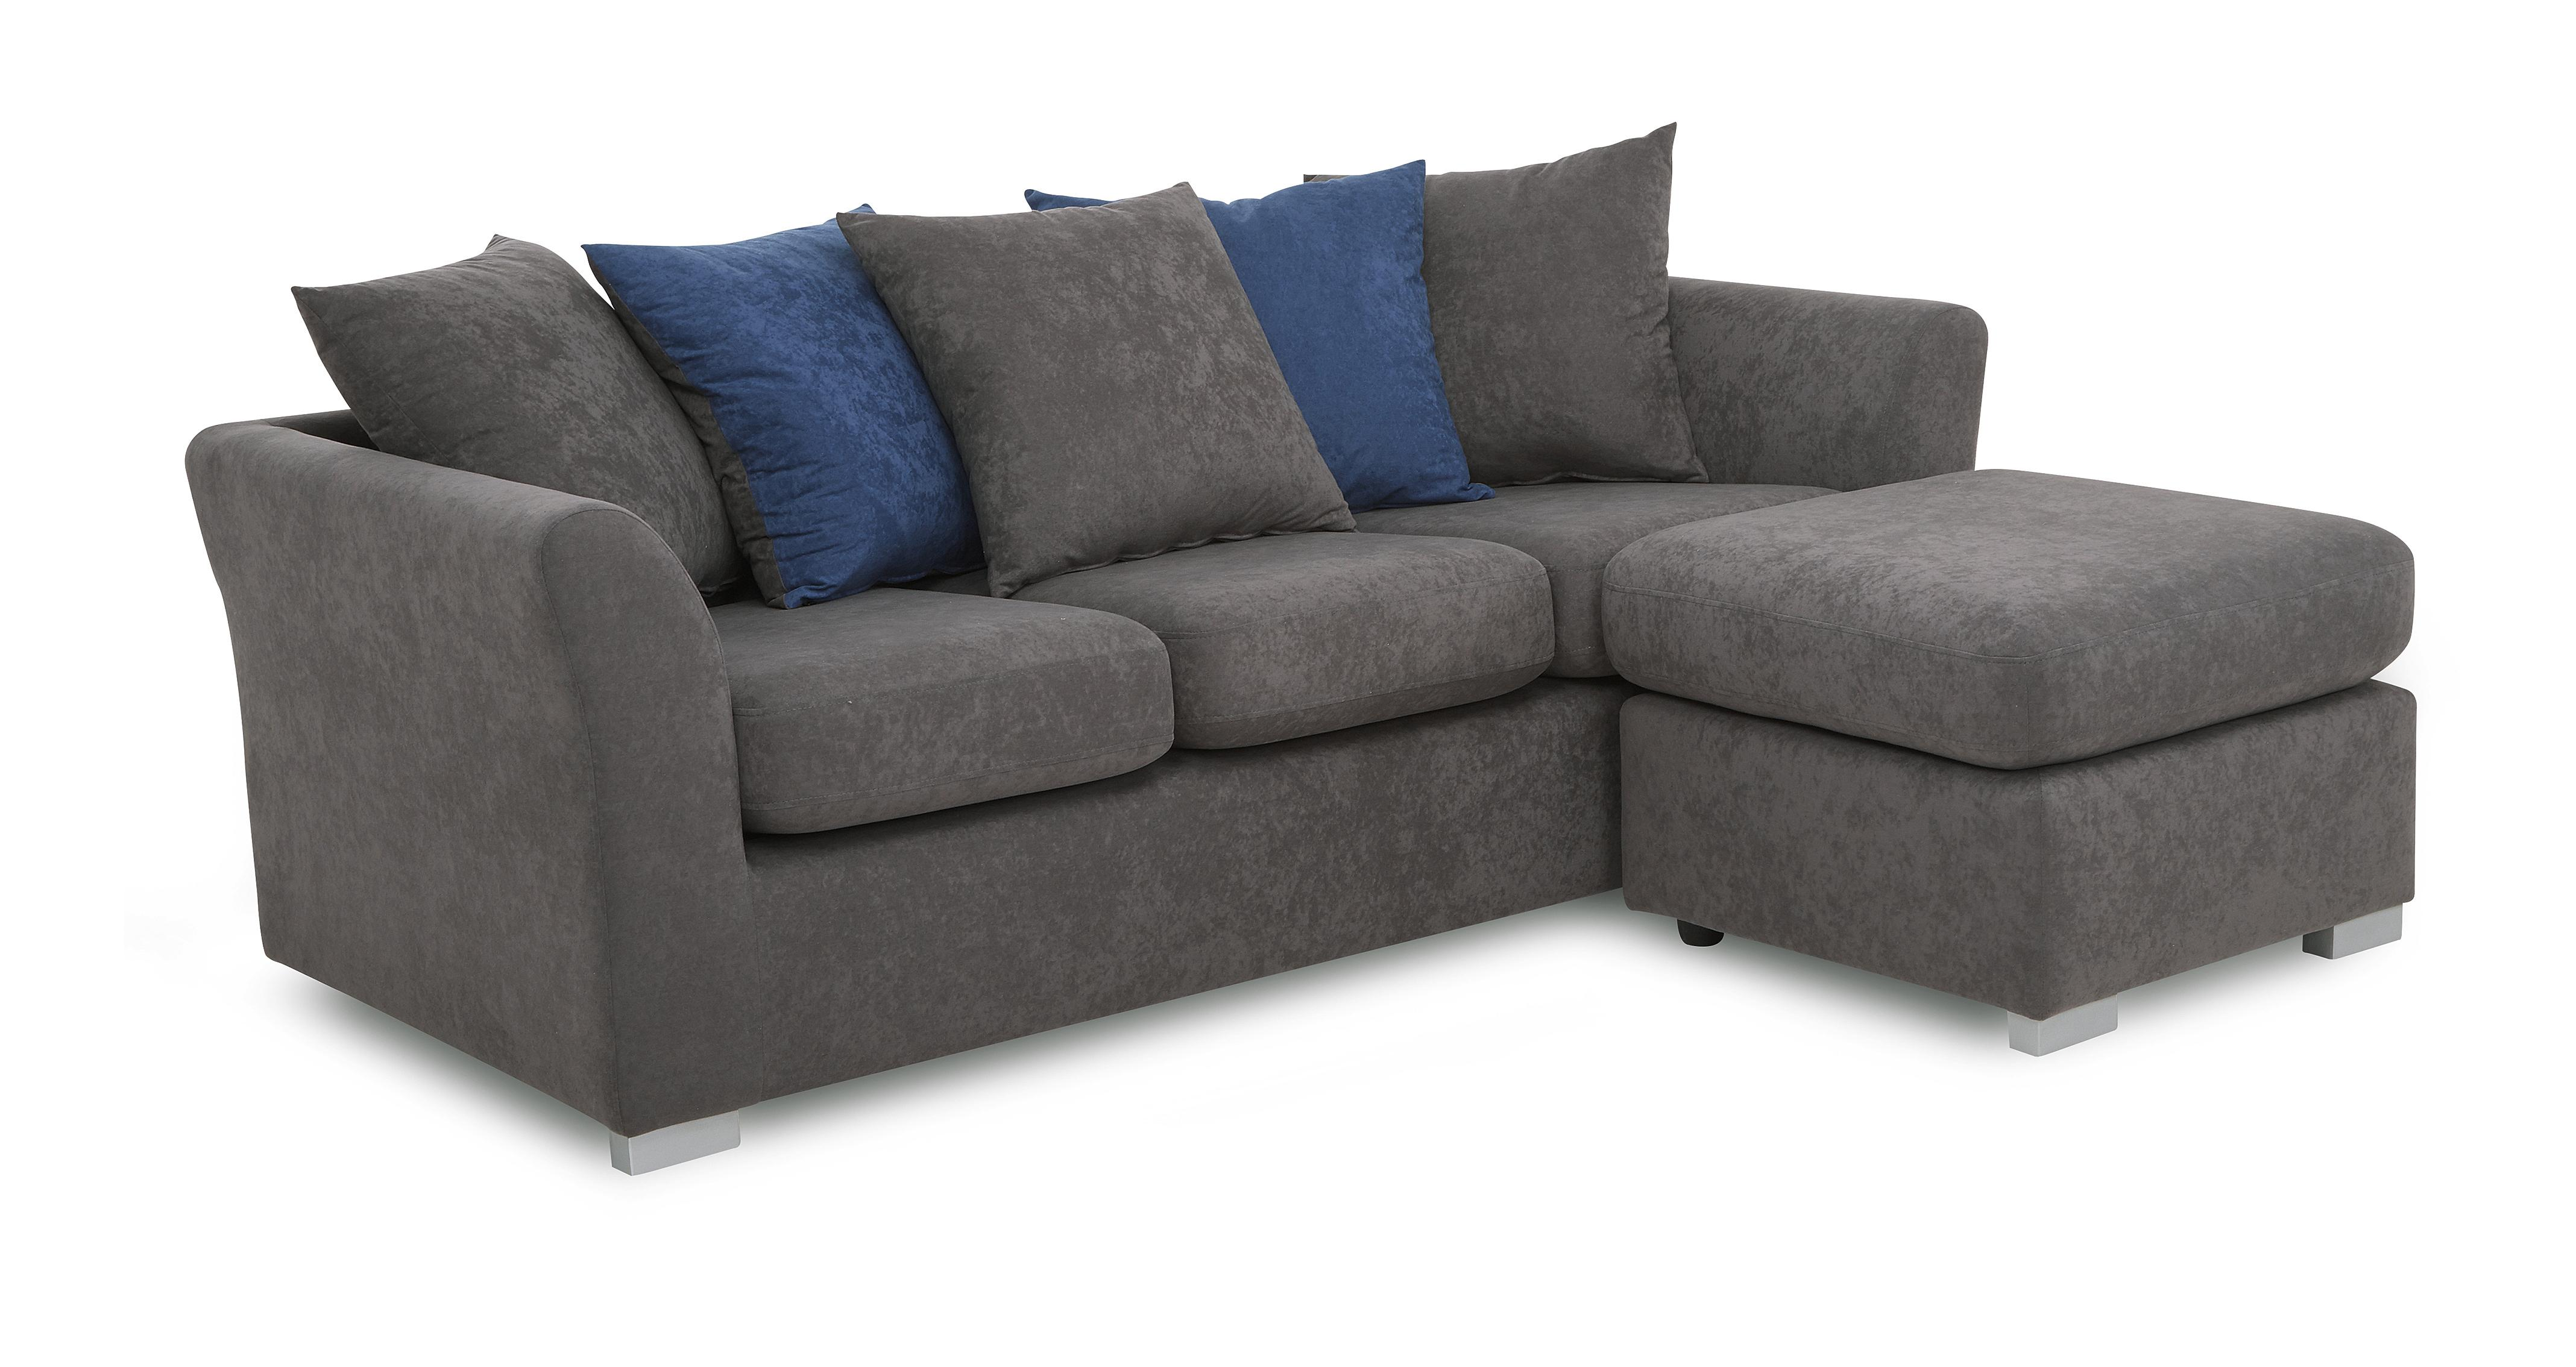 corner sofa bed roma grey modern office waiting room simple double with pull